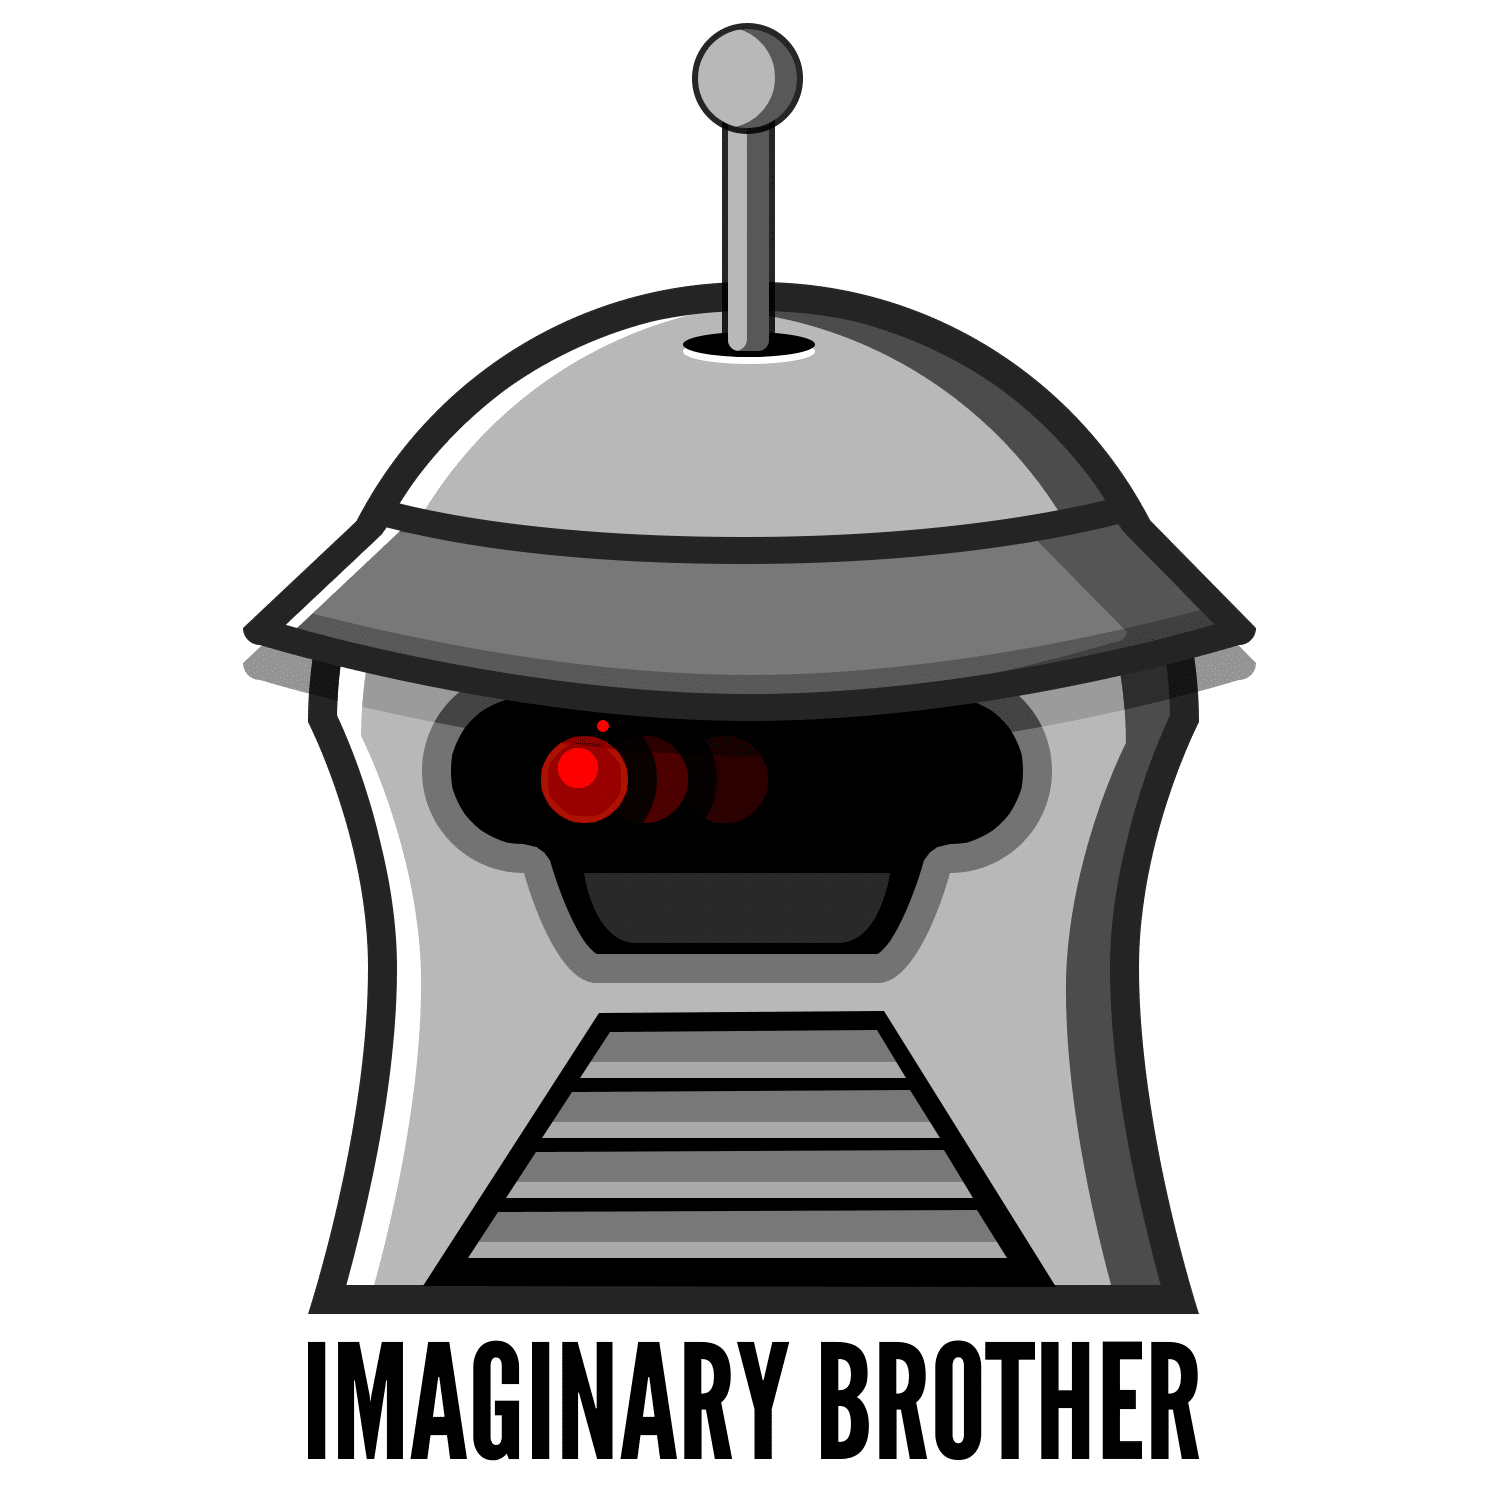 Imaginary Brother